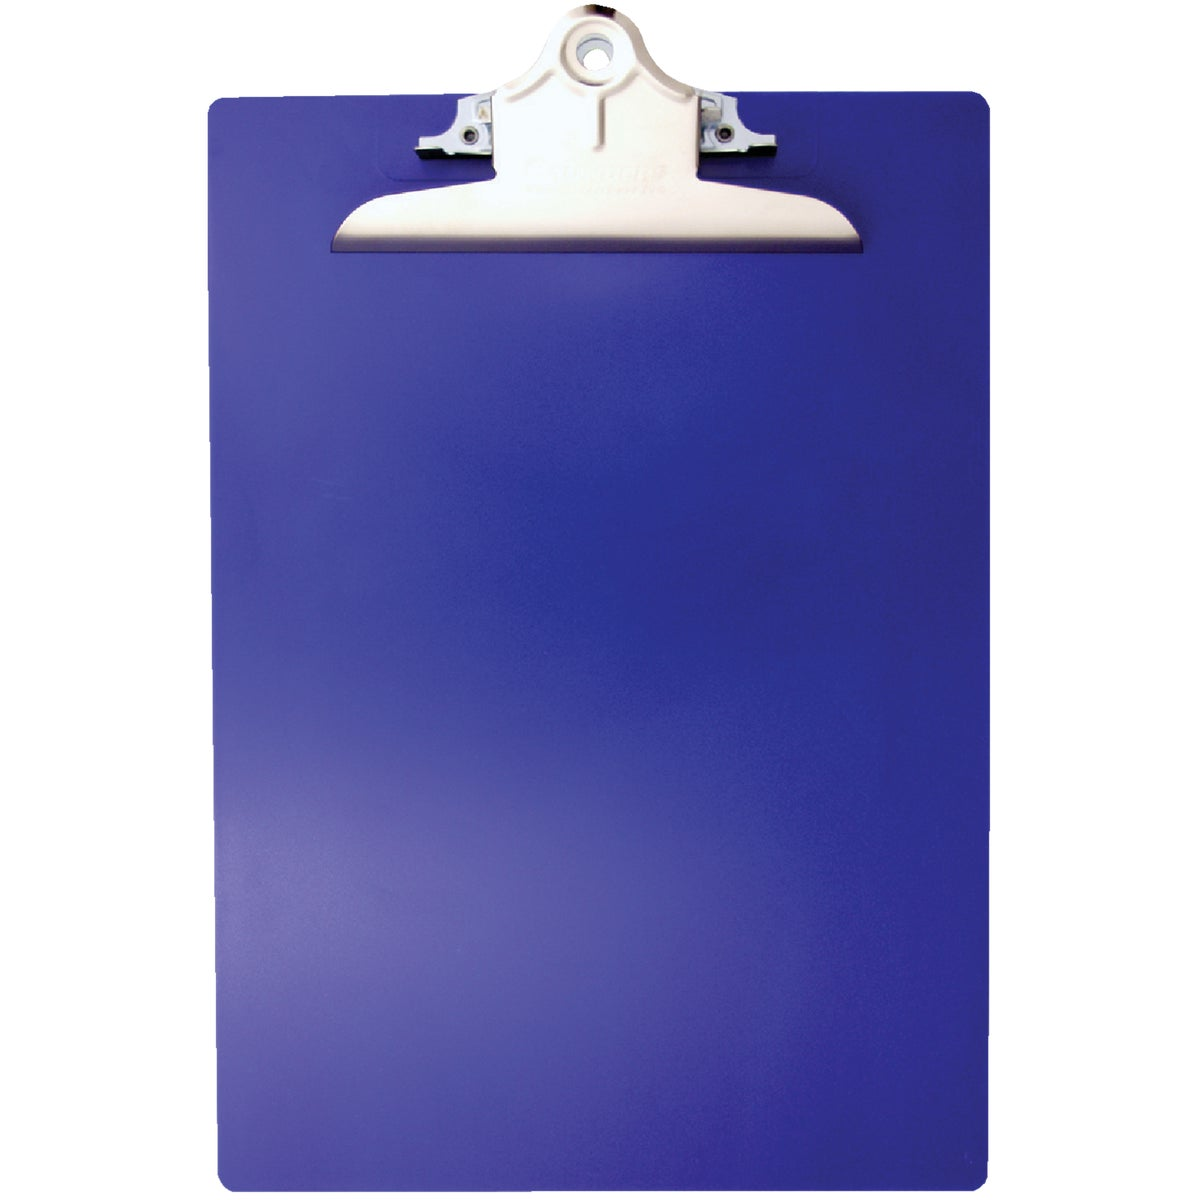 Saunders Recycled Plastic Clipboard, Letter Size 8.5 x 12 Inches, Blue (21602)